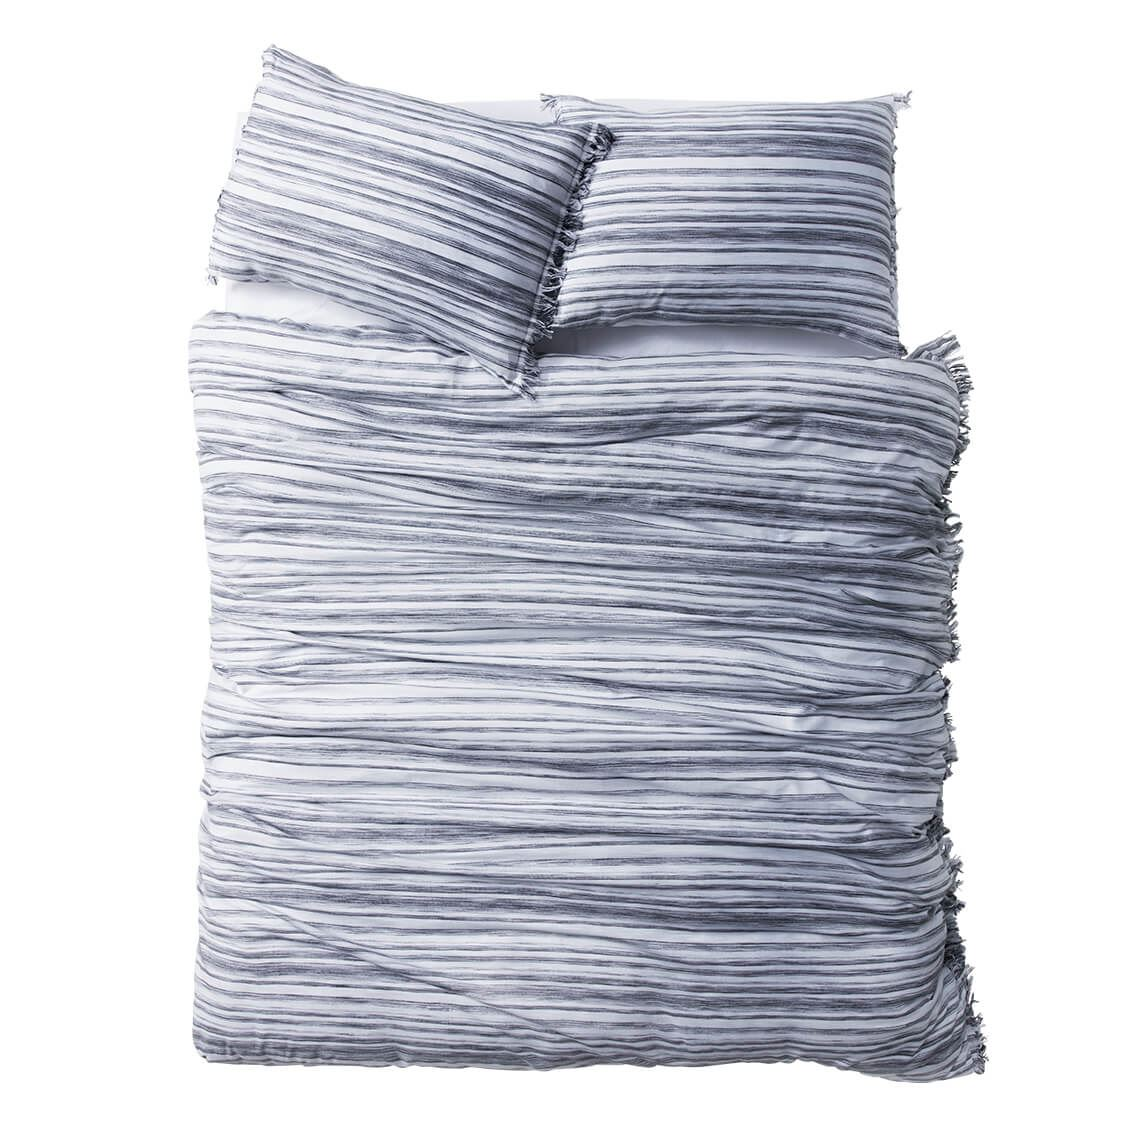 Space Dyed Texture King Quilt Cover Size W 245cm x D 1cm x H 210cm in Navy/Grey Freedom by Freedom, a Quilts & Bedspreads for sale on Style Sourcebook